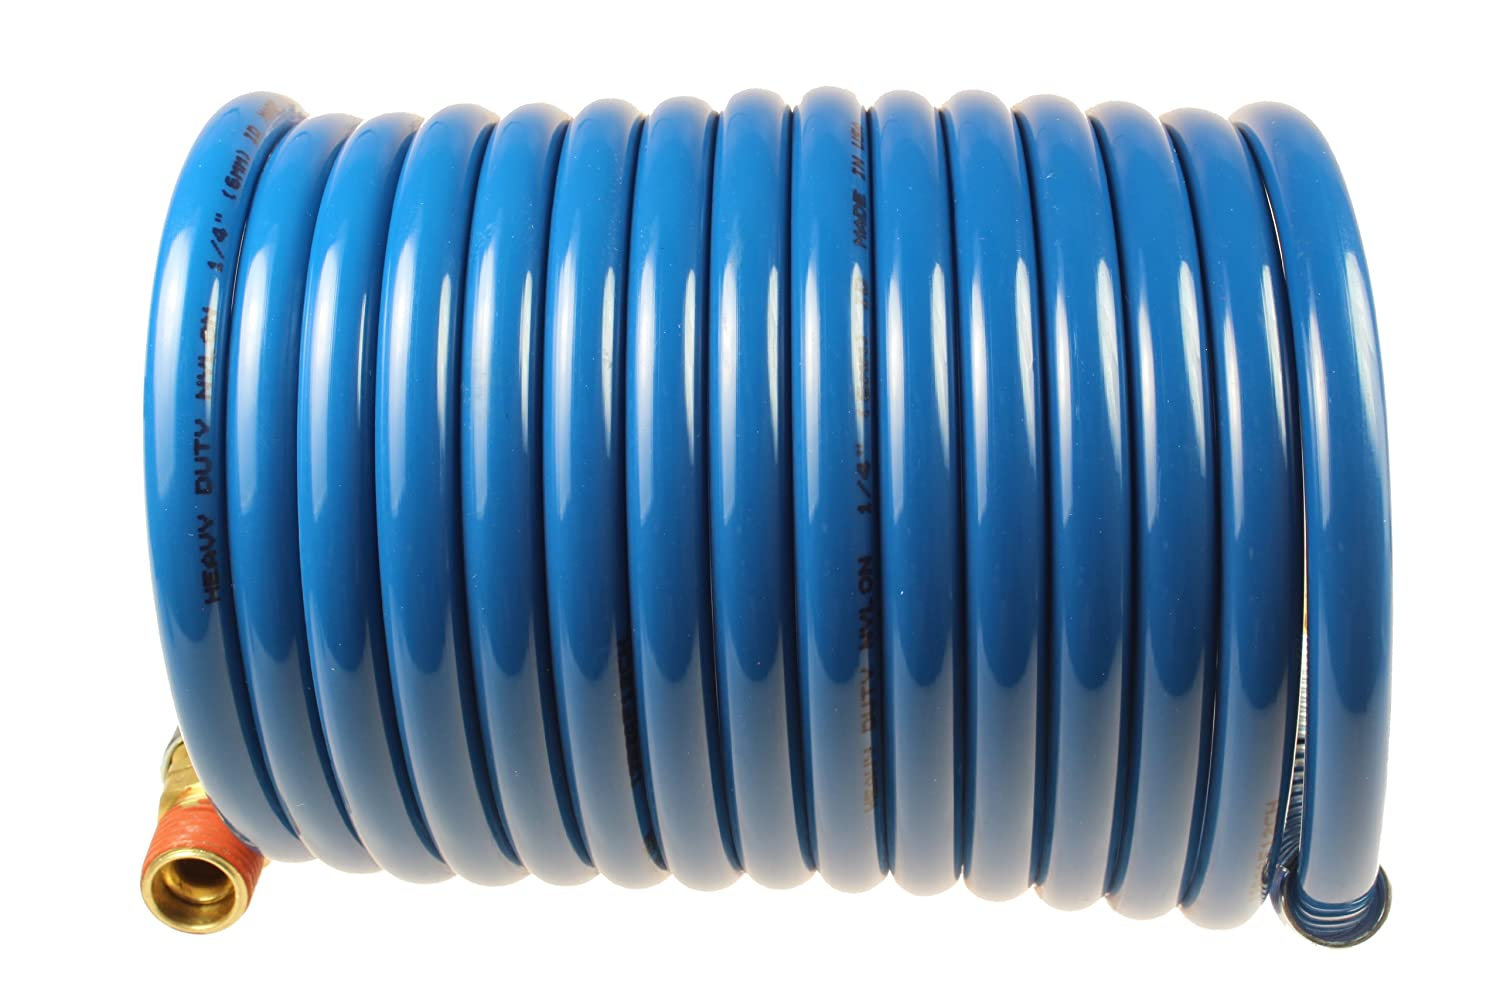 1//4-Inch ID 1//4-Inch MPT Swivel Fittings 2 Coilhose Pneumatics S14-12B Stowaway Heavy Duty Nylon Coiled Air Hose 12-Foot Length with